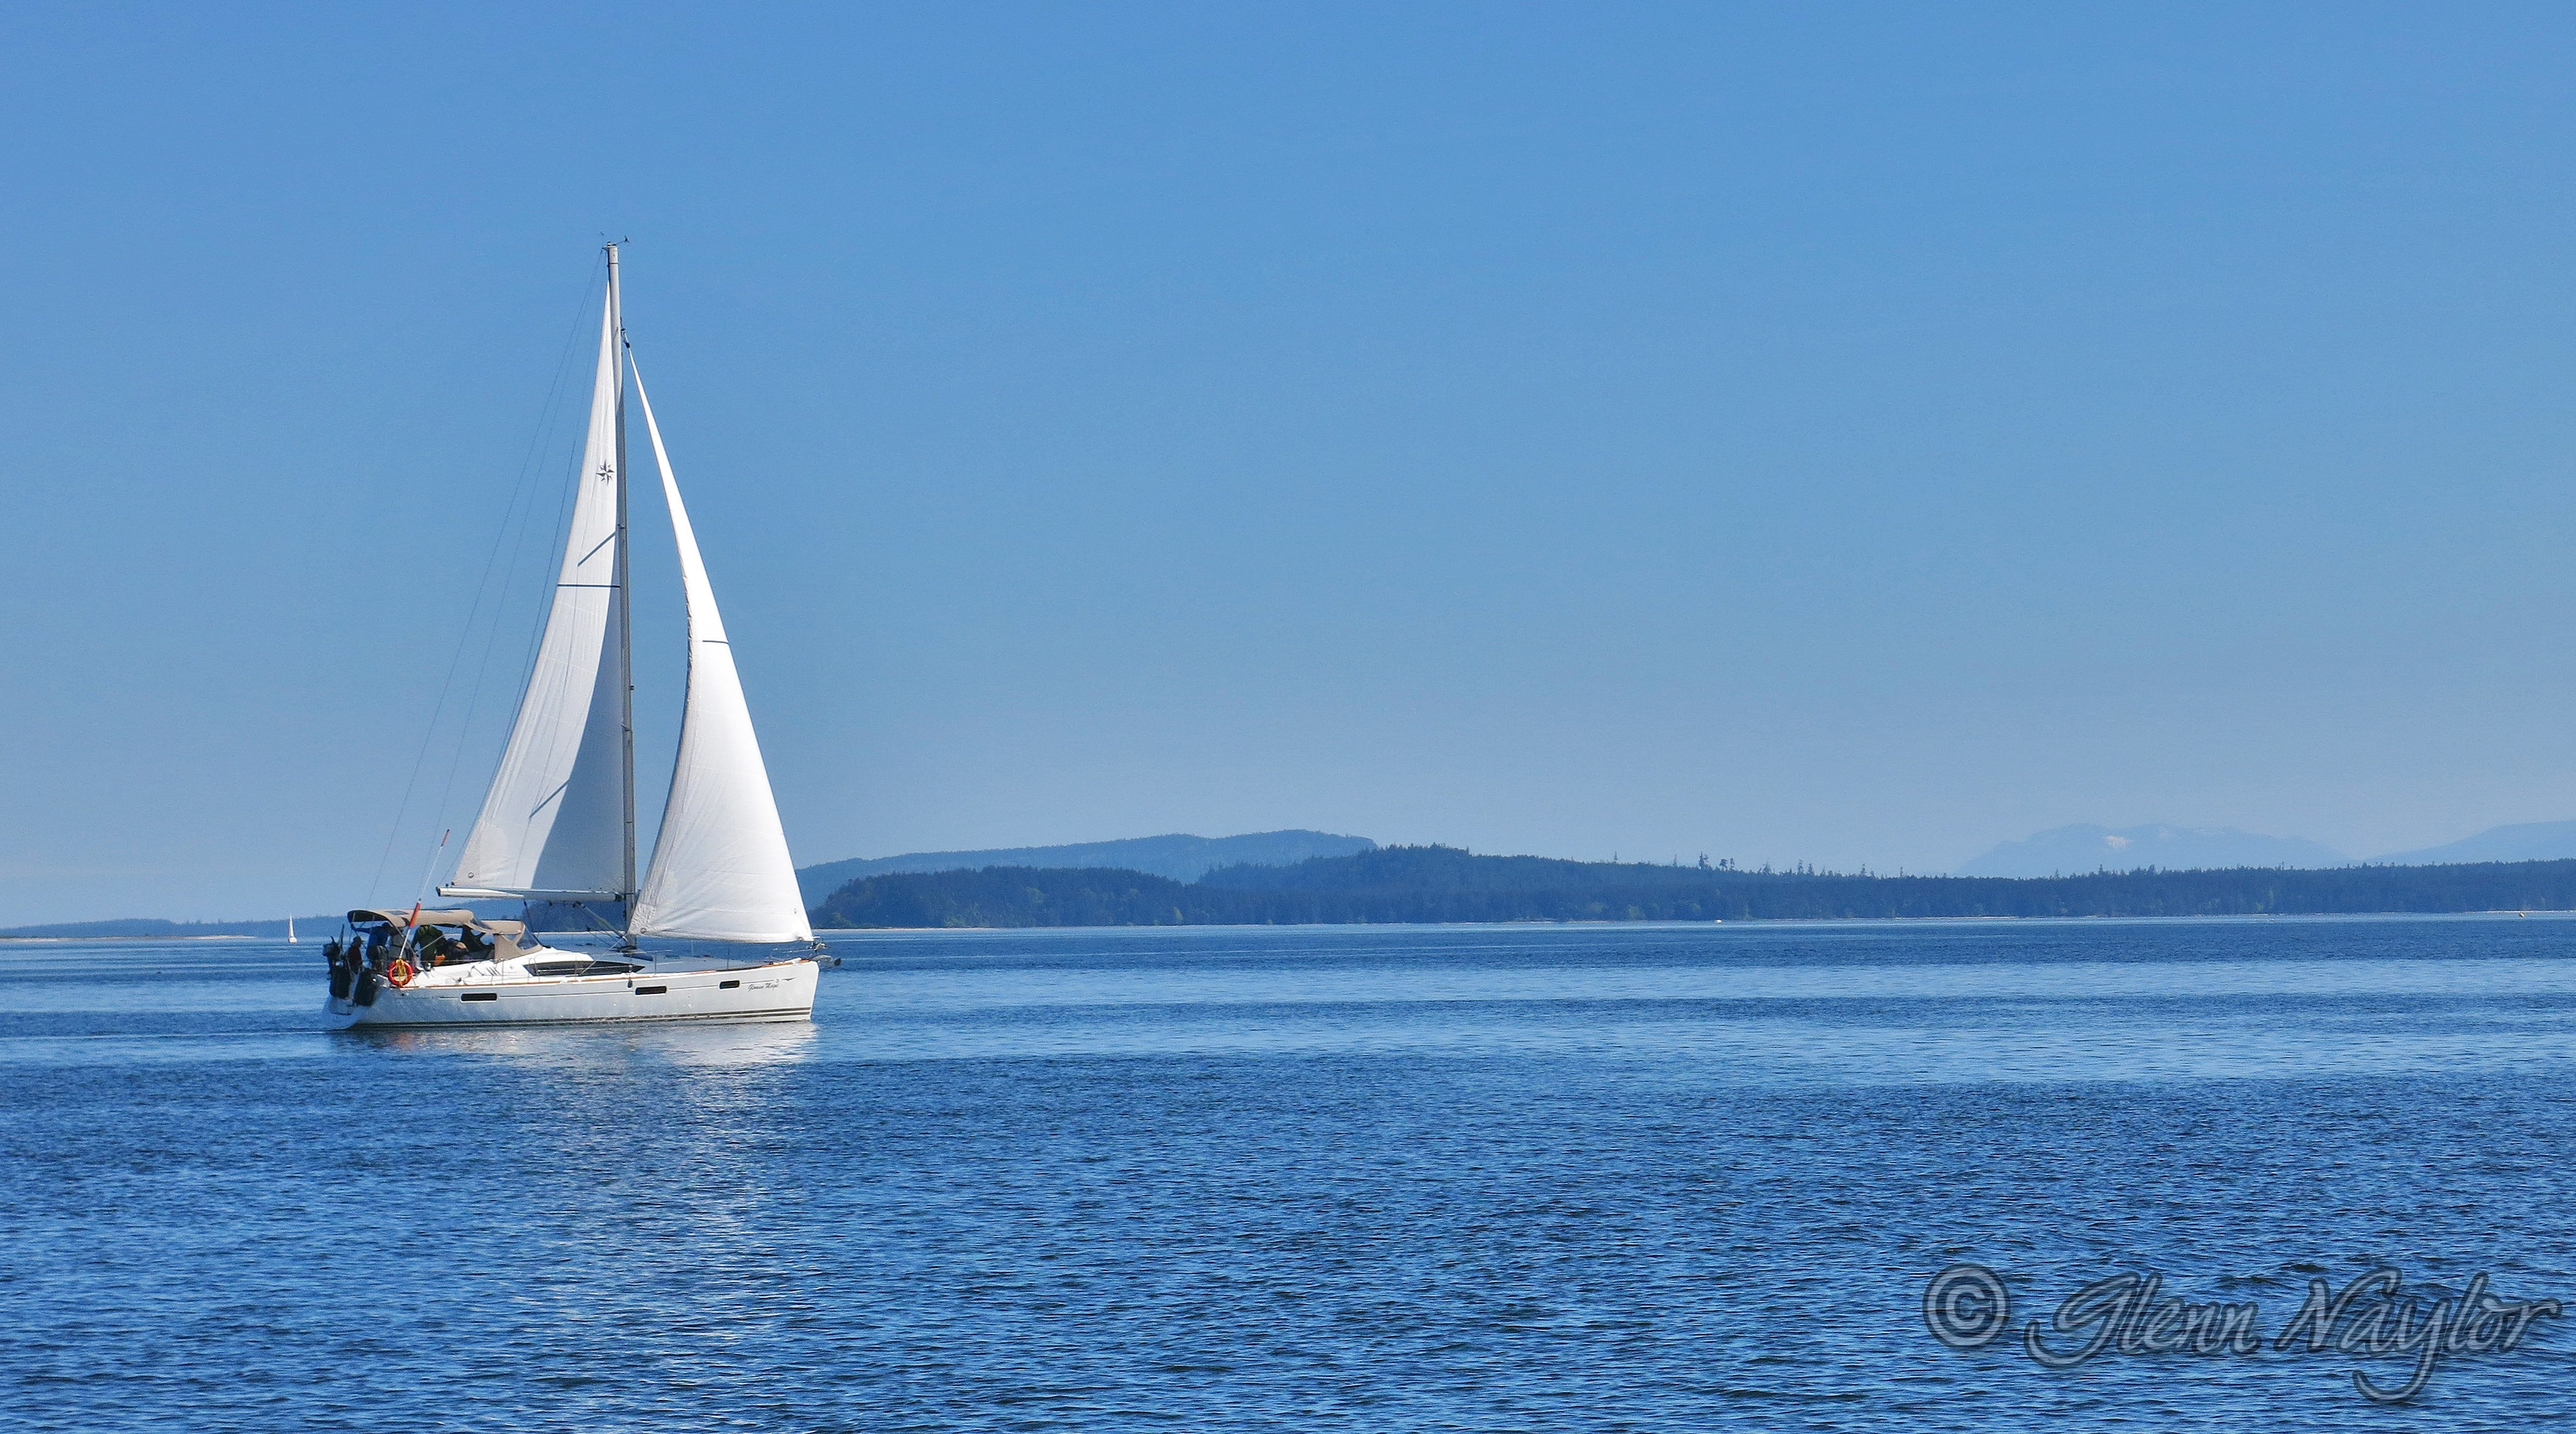 Sailing towards Denman Island, Comox